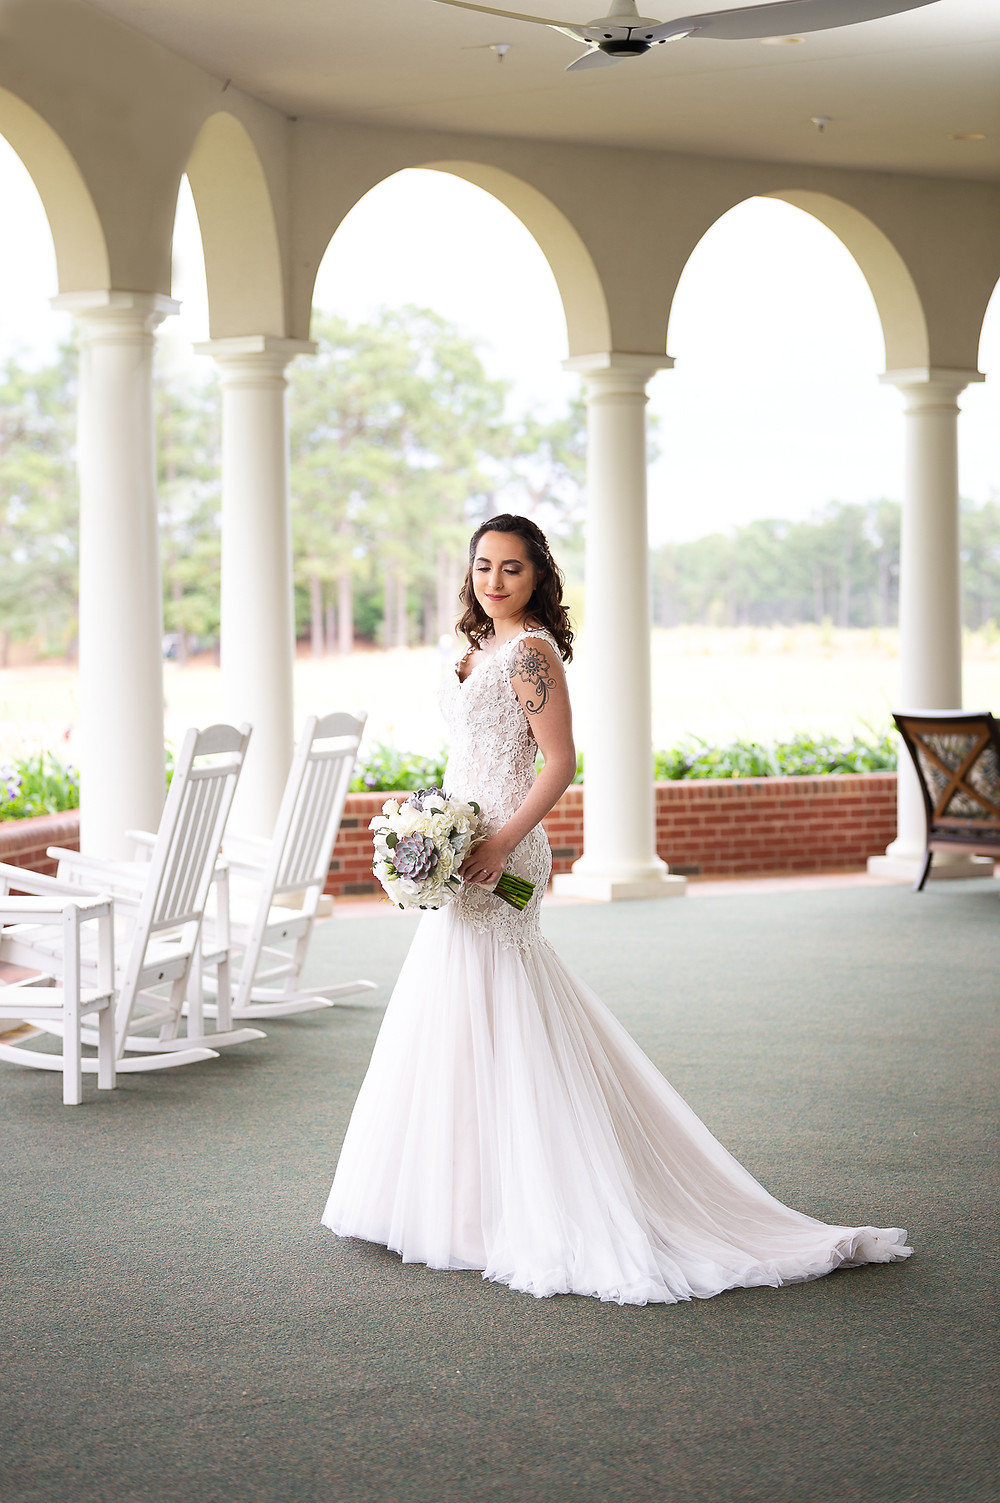 Pinehurst photography wedding pictures , best wedding photographer Southern Pines